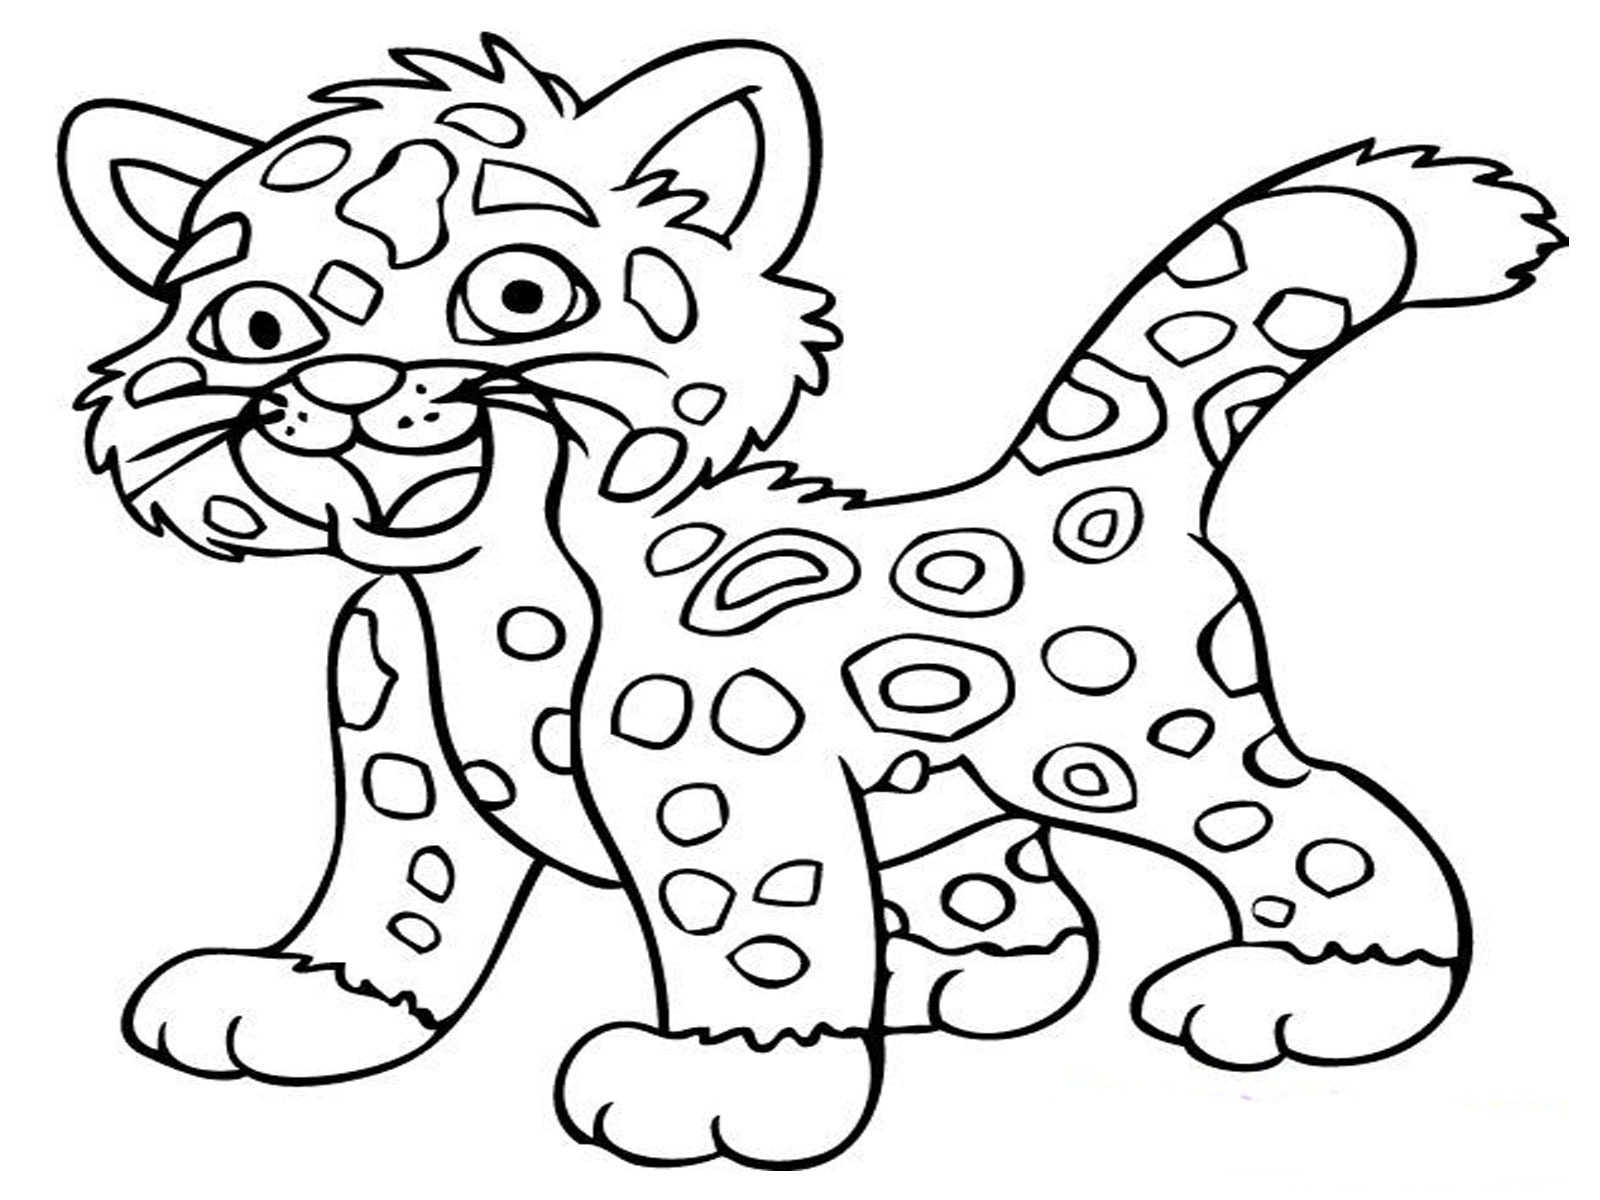 coloring pages baby jaguar - photo#6